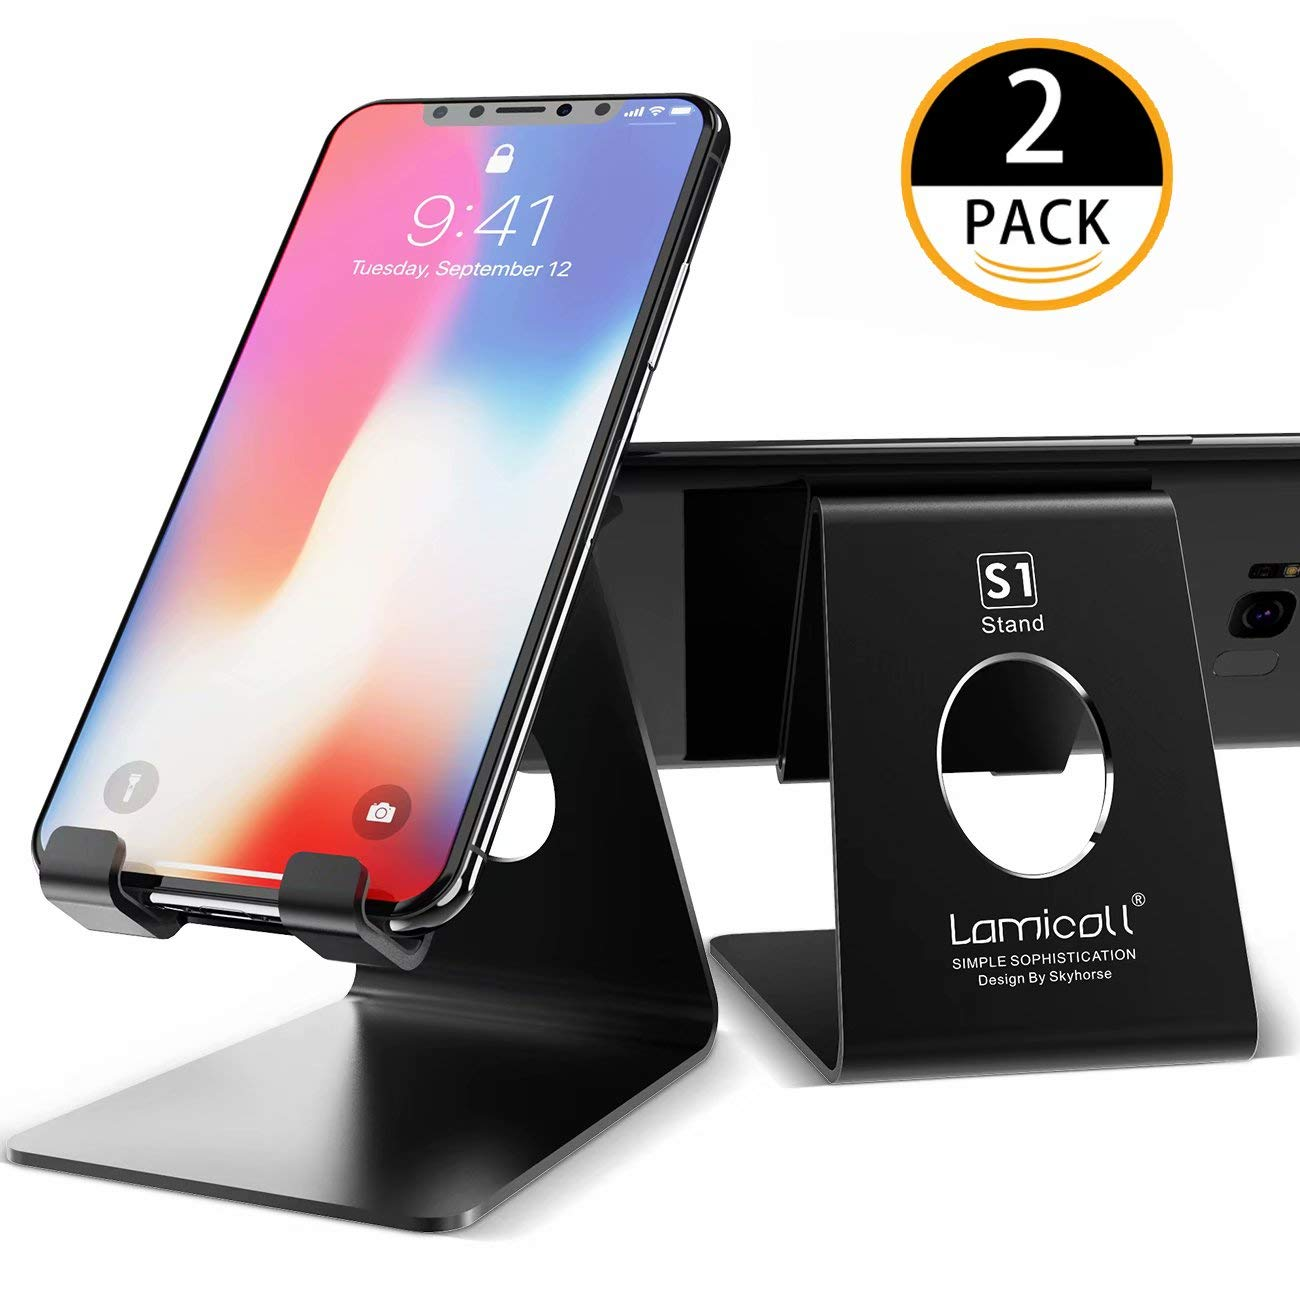 Cell Phone Stand, Lamicall Phone Stand : [2 Pack] Desktop Holder Cradle, Dock Compatible with Switch, all Android Smartphone, Phone 6 6s 7 8 X Plus 5 5s 5c, Universal Accessories Desk - Black